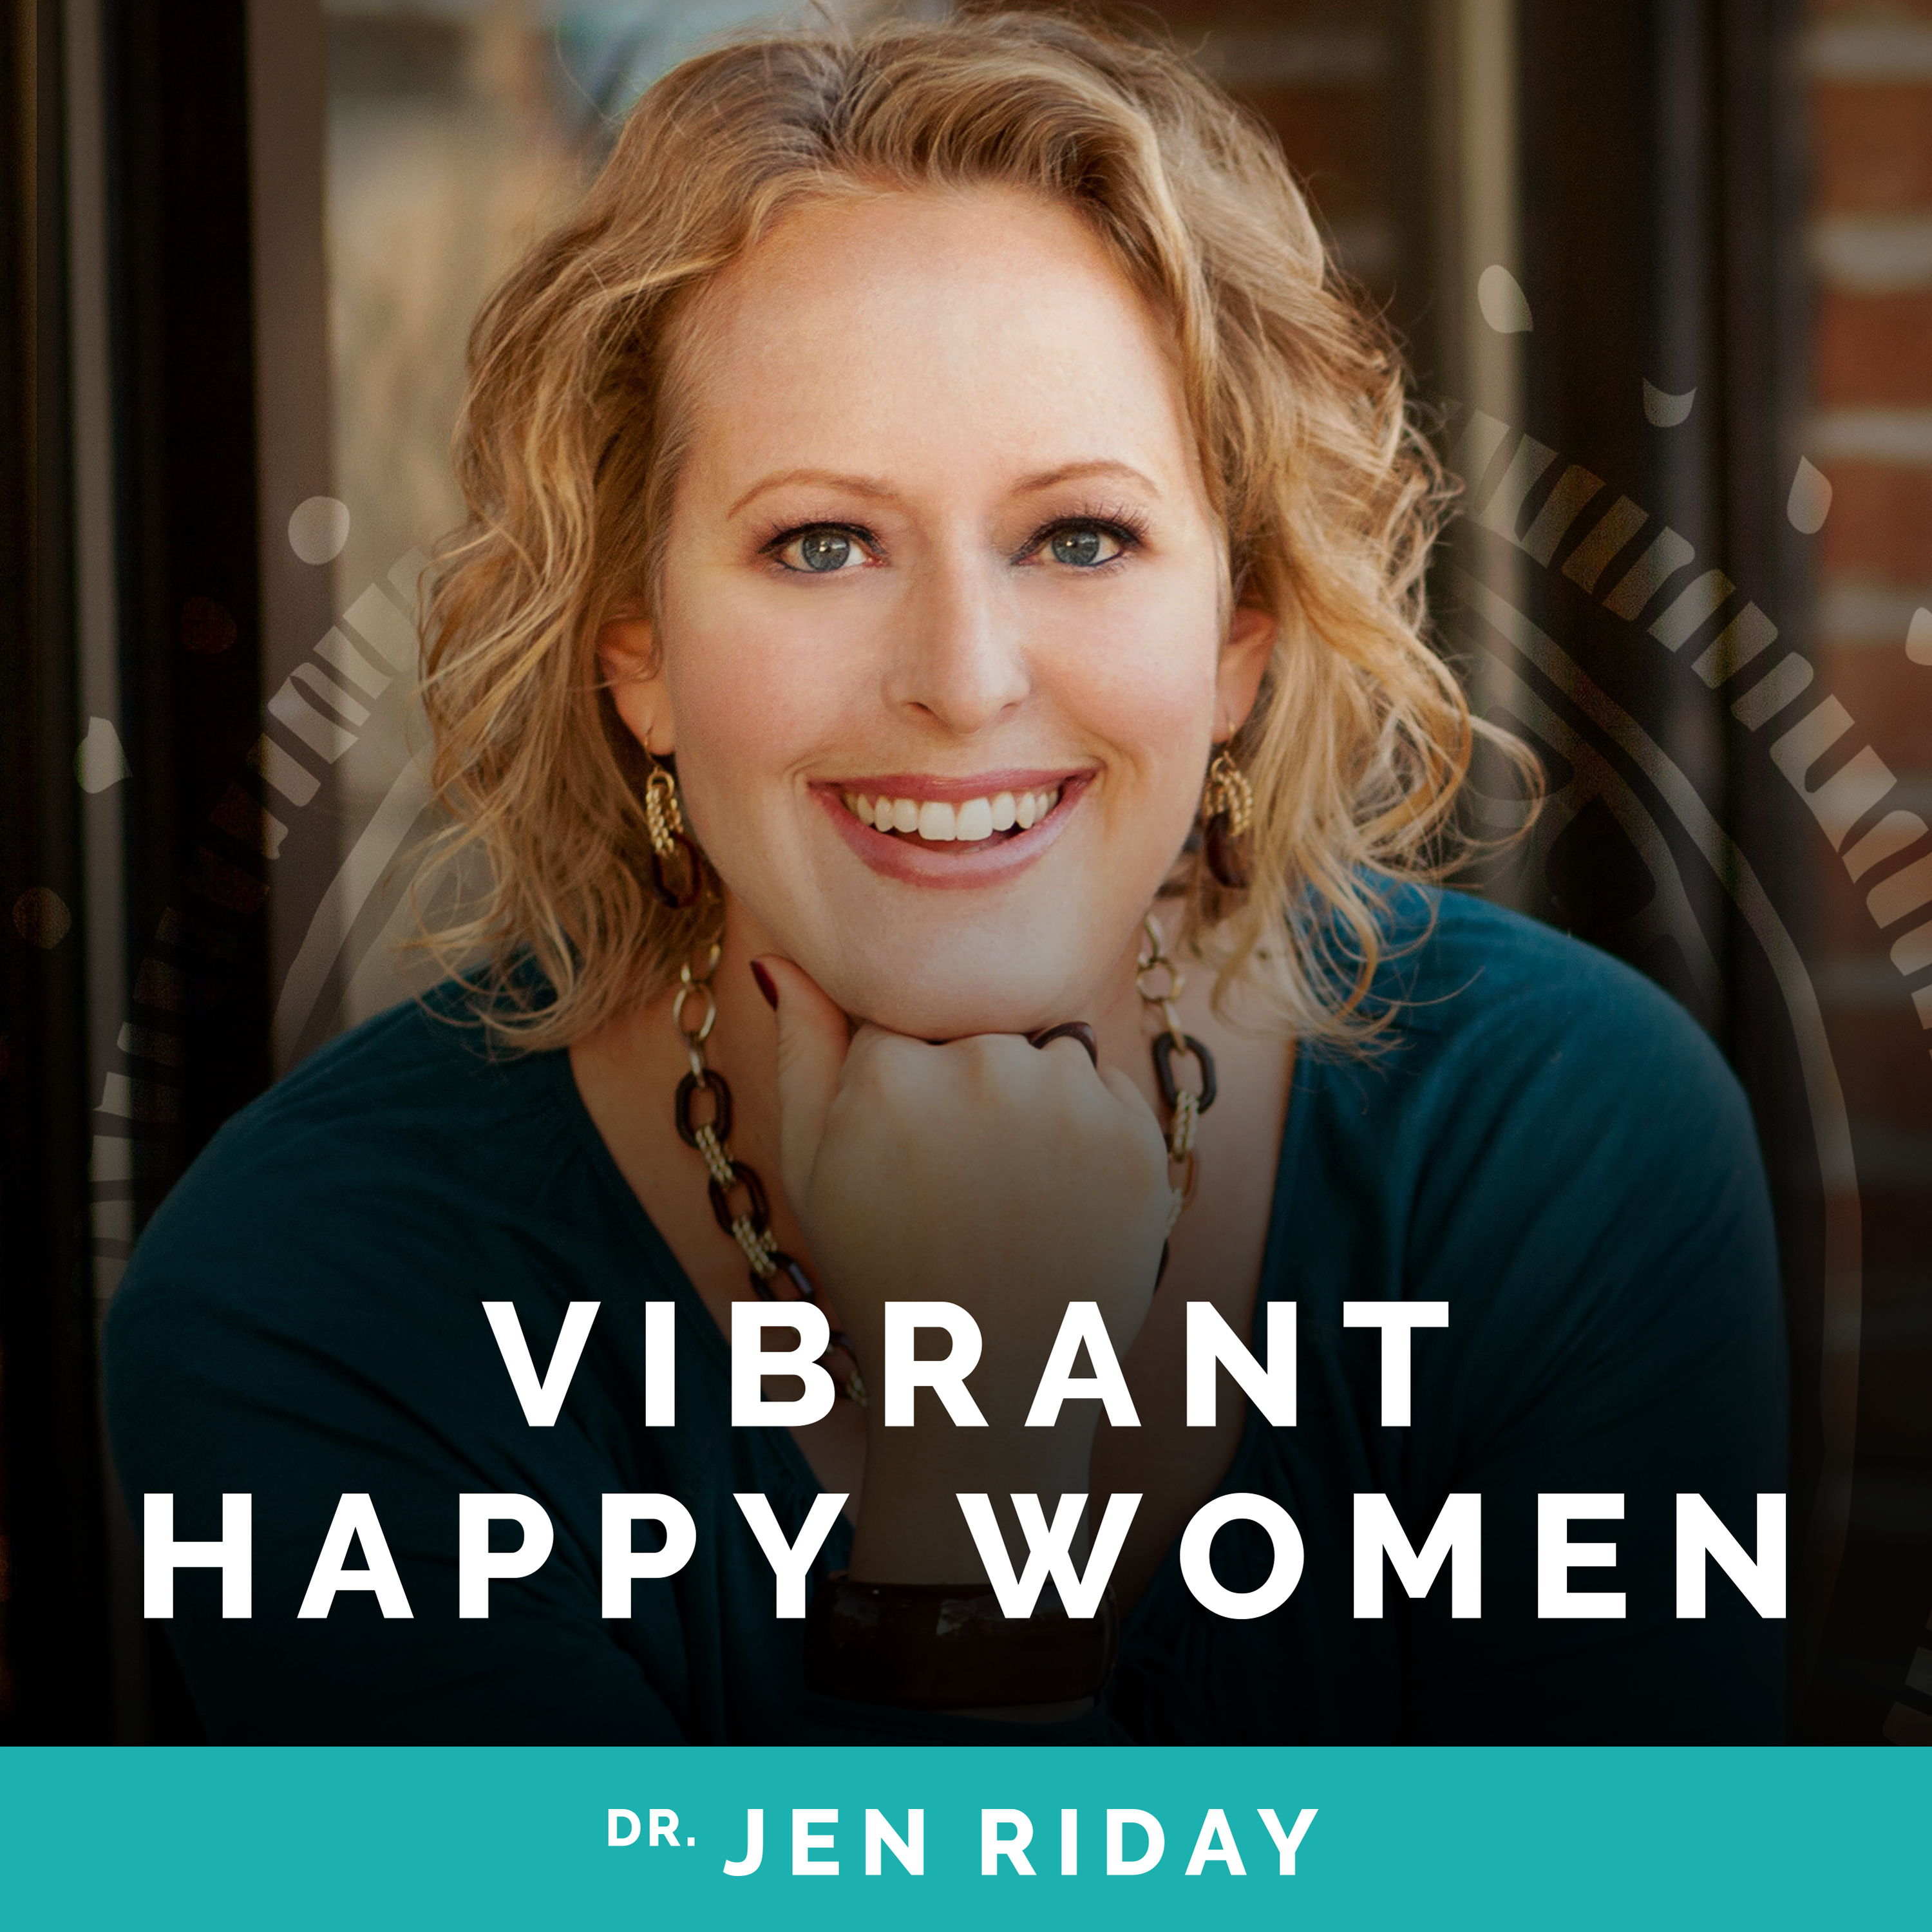 Vibrant Happy Women | Get happier! Inspiring stories from real moms and happiness experts like Brené Brown, Gretchen Rubin, Elizabeth Gilbert, and more!